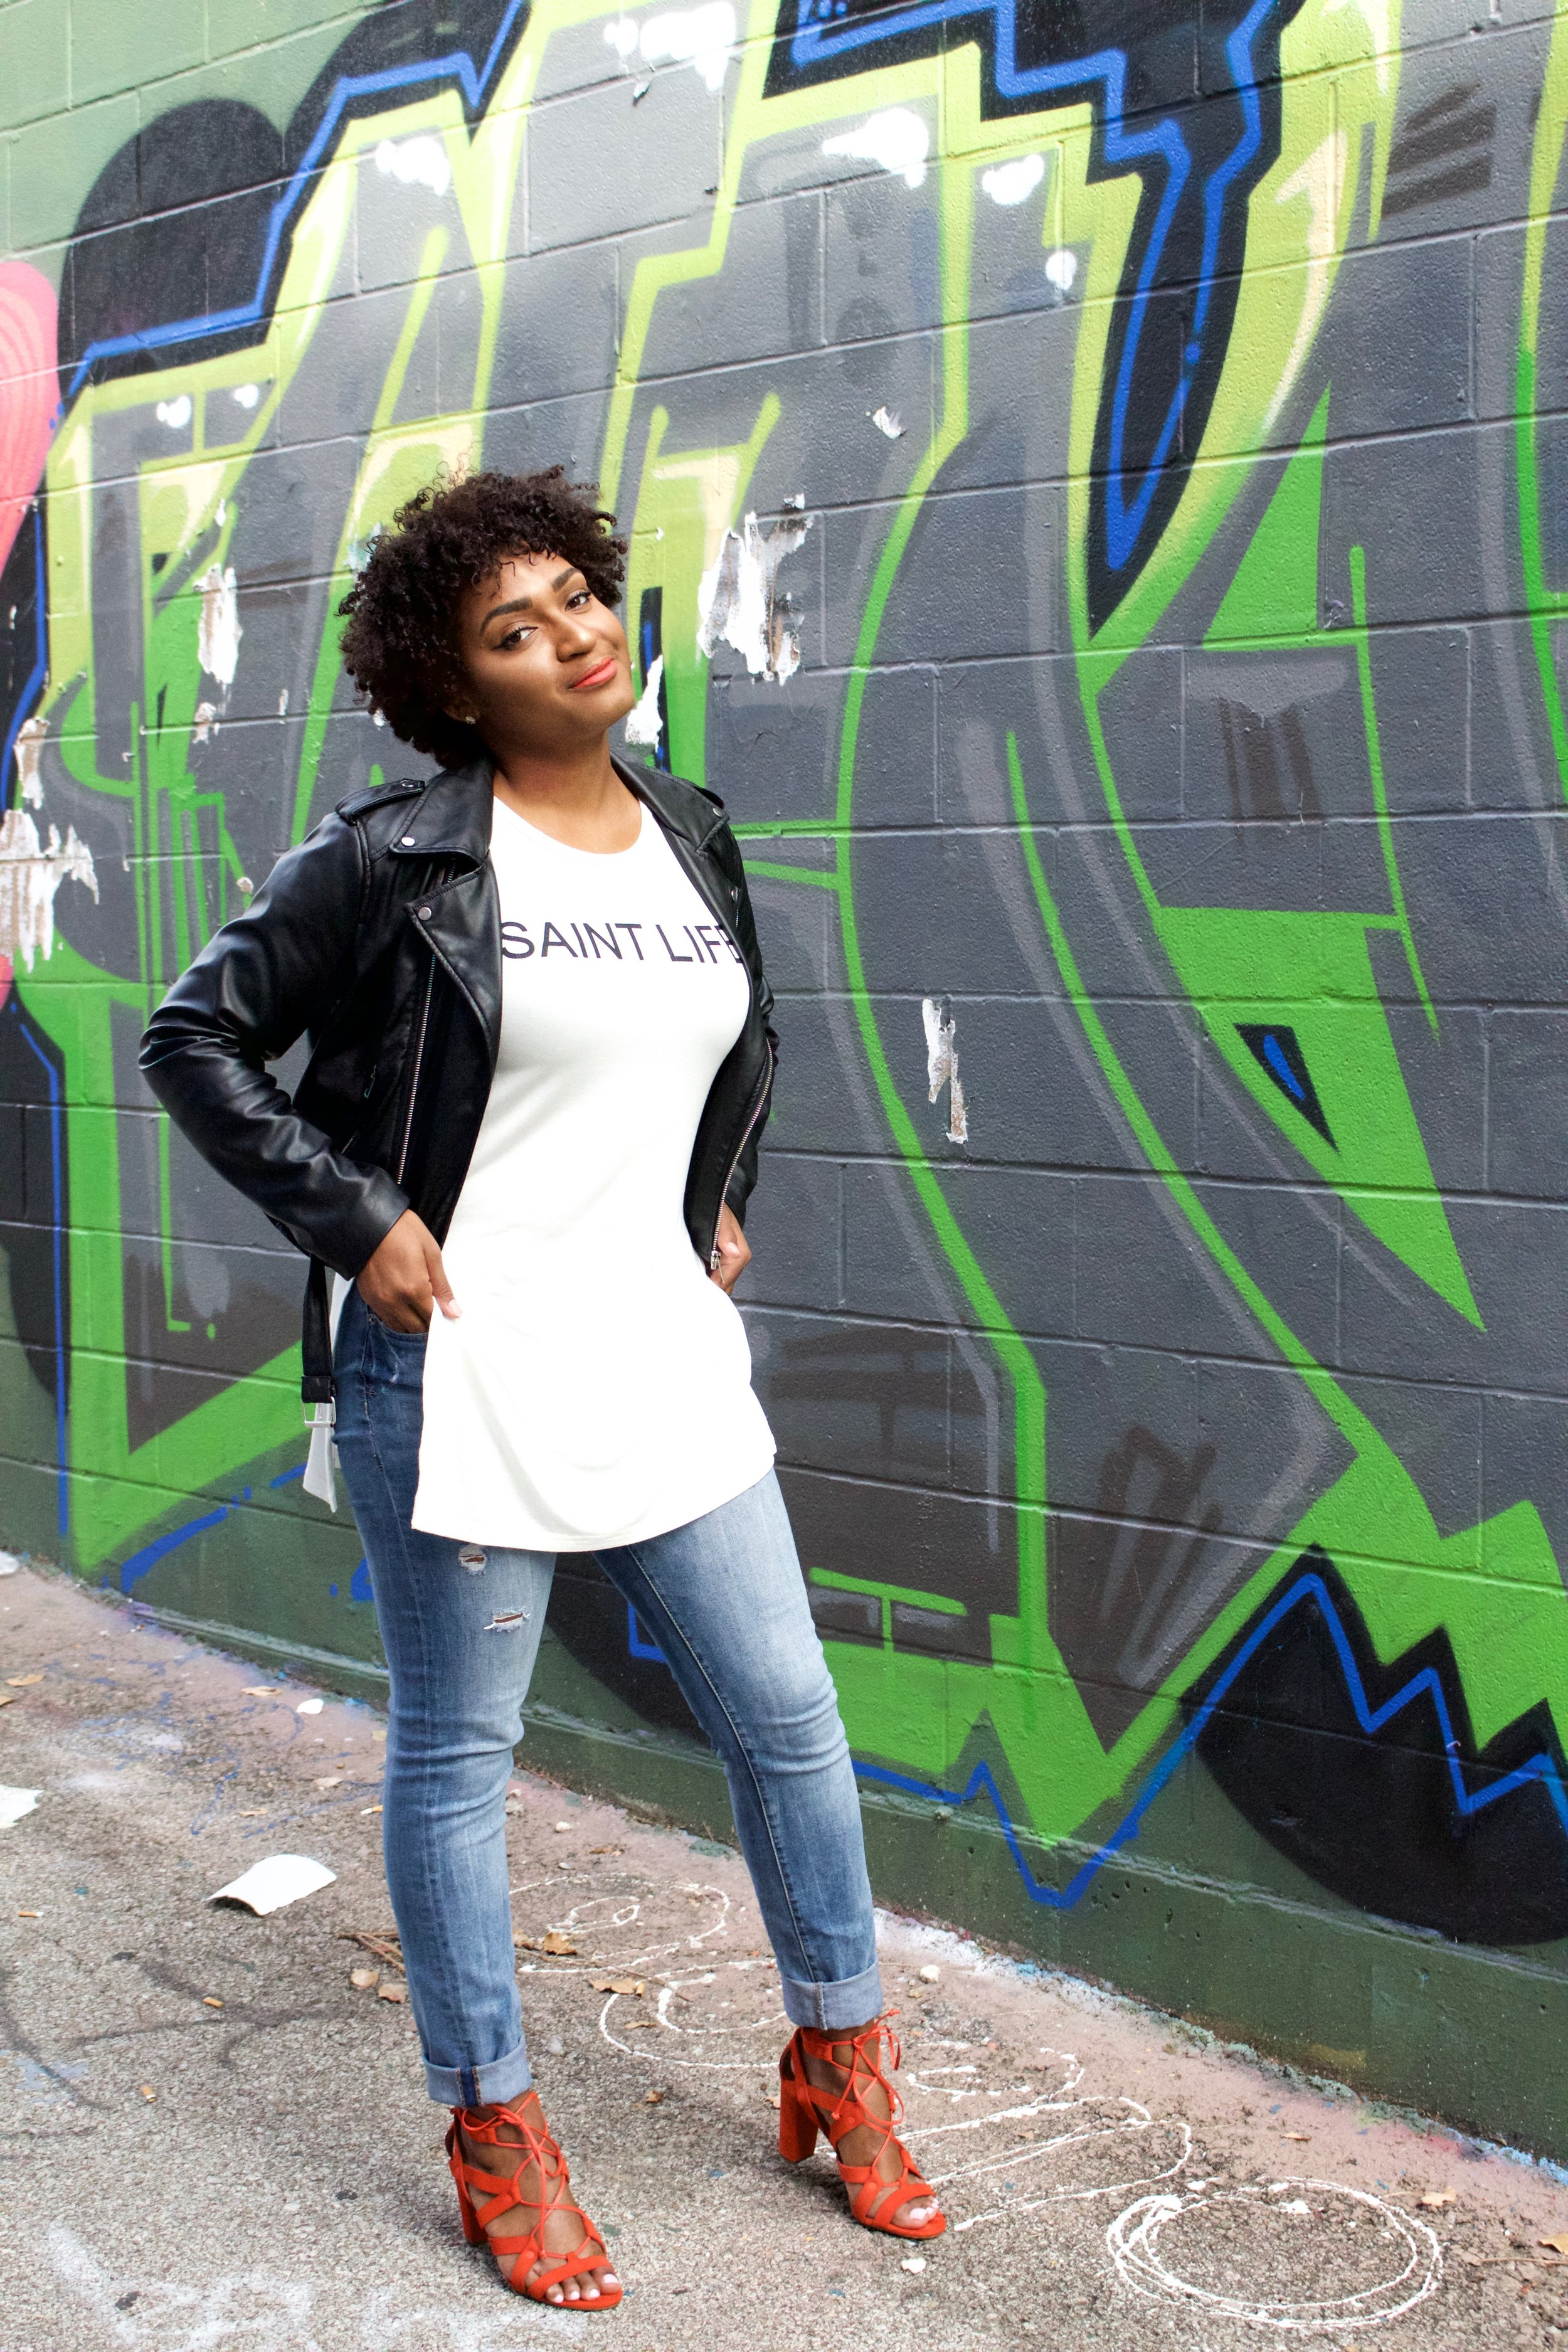 Leather Jacket, saint life tee, Orange Strappy Heels and distressed jeans by black fashion blogger jasmine diane.